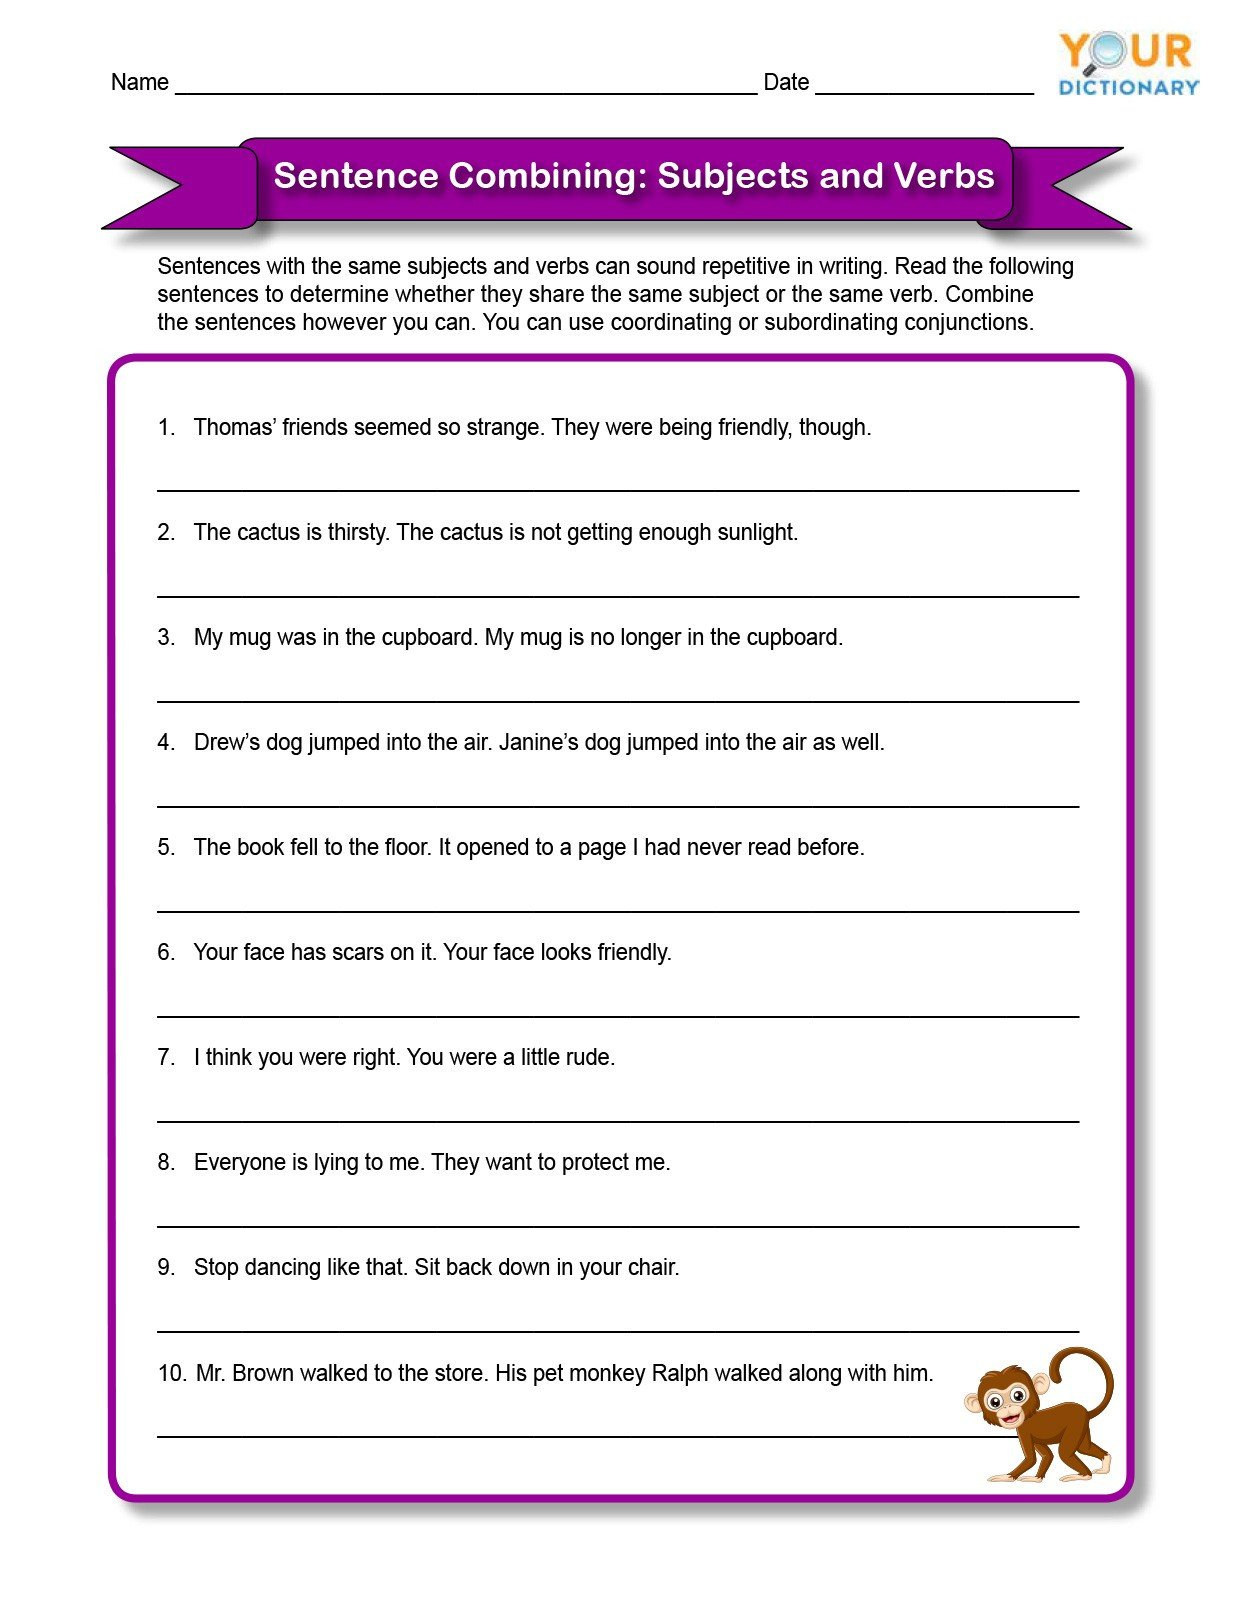 Combining Sentences Worksheets 5th Grade Sentence Bining Worksheets